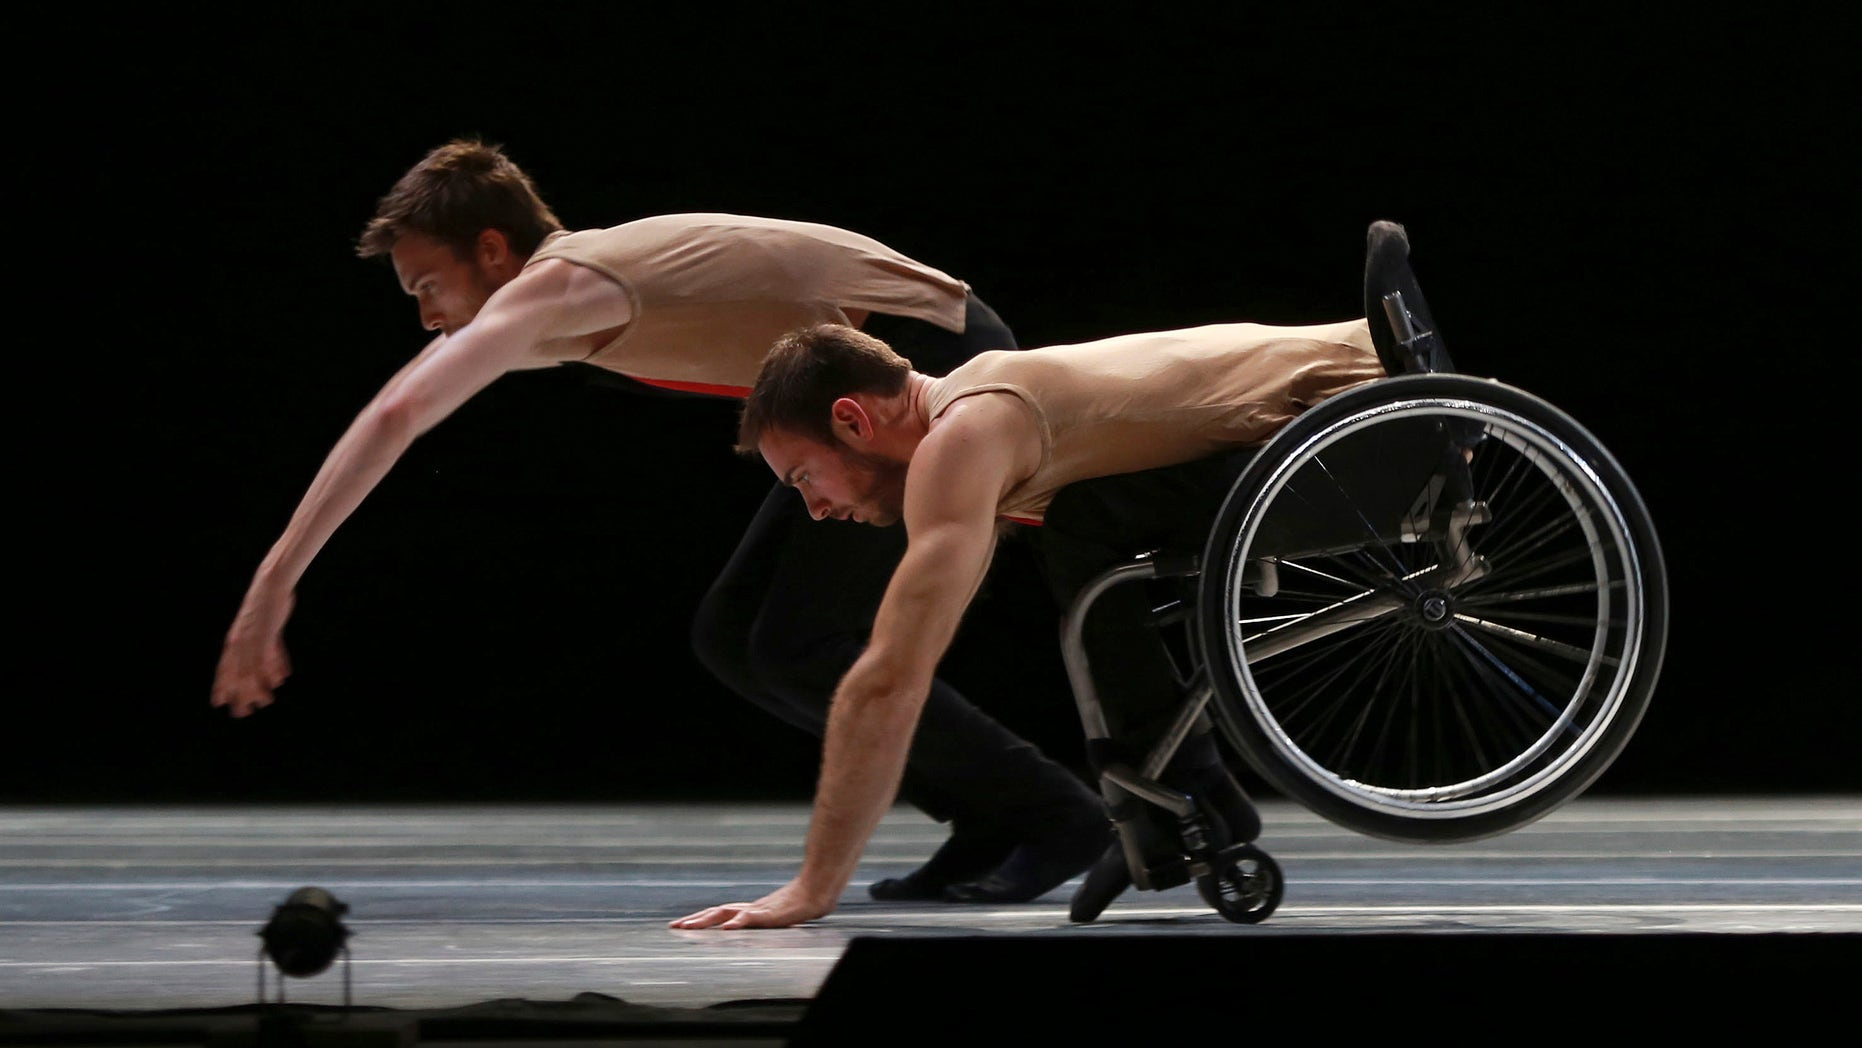 """Dancers from the United Kingdom's Candoco Dance Company perform a piece called """"Let's Talk About Dis"""" at the Guanajuato State Auditorium during the 43rd edition of the Cervantino International Festival in Guanajuato, Mexico, Sunday, Oct. 11, 2015. The Candoco Dance Company mixes disabled and non-disabled dancers in many of its choreographies. (AP Photo/Mario Armas)"""